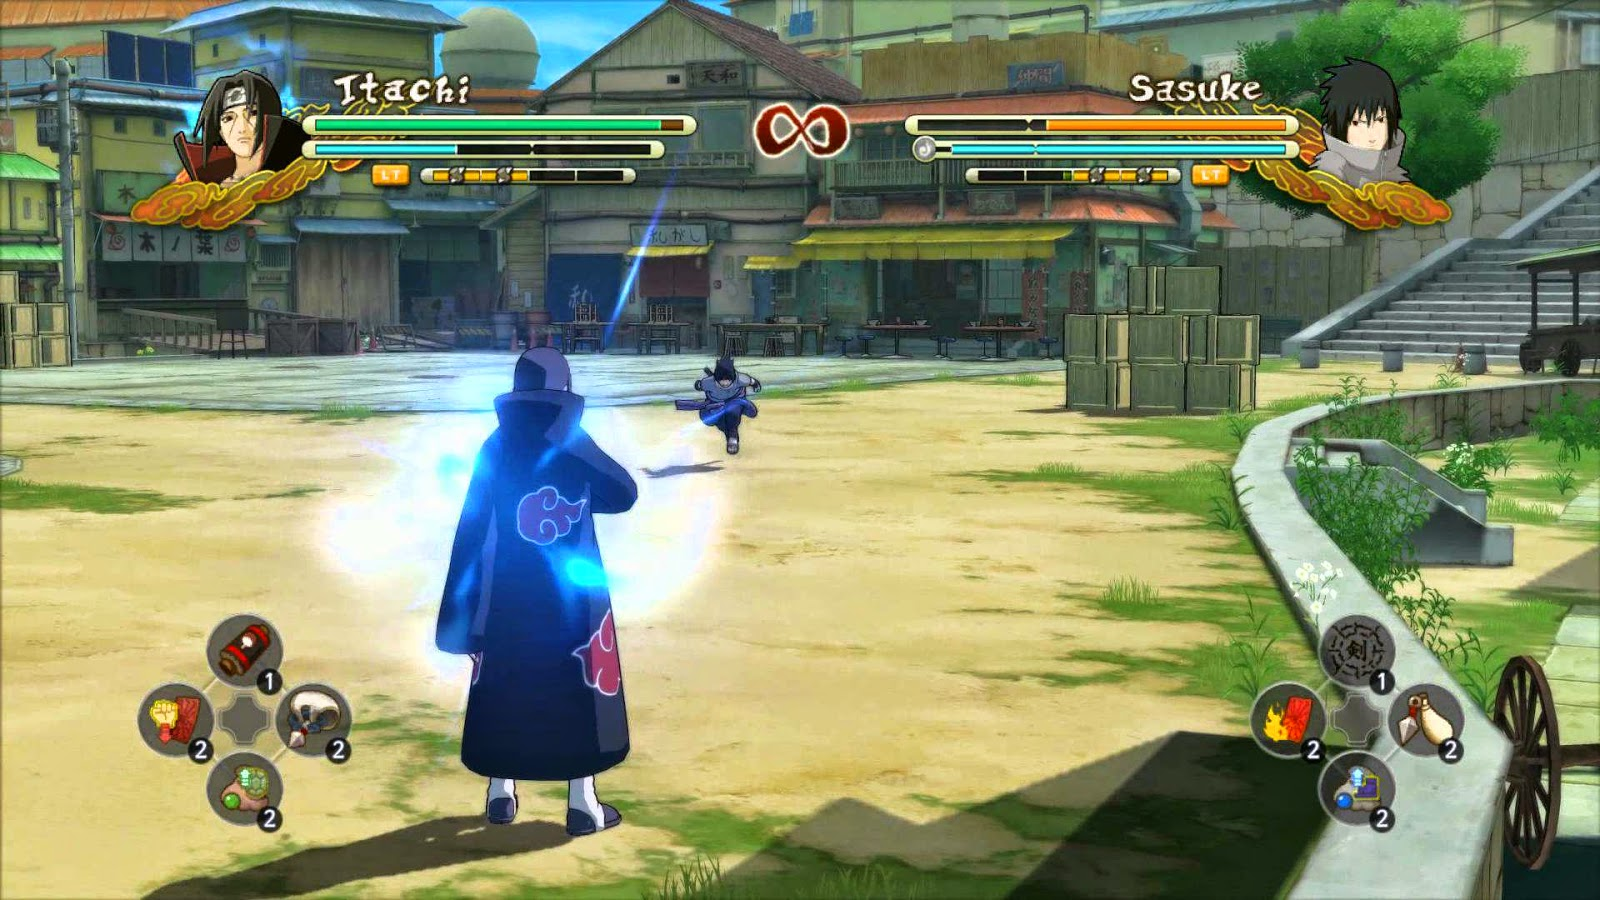 [Image: Naruto+Ninja+Storm+3+Full+Burst+PC+Game.jpg]